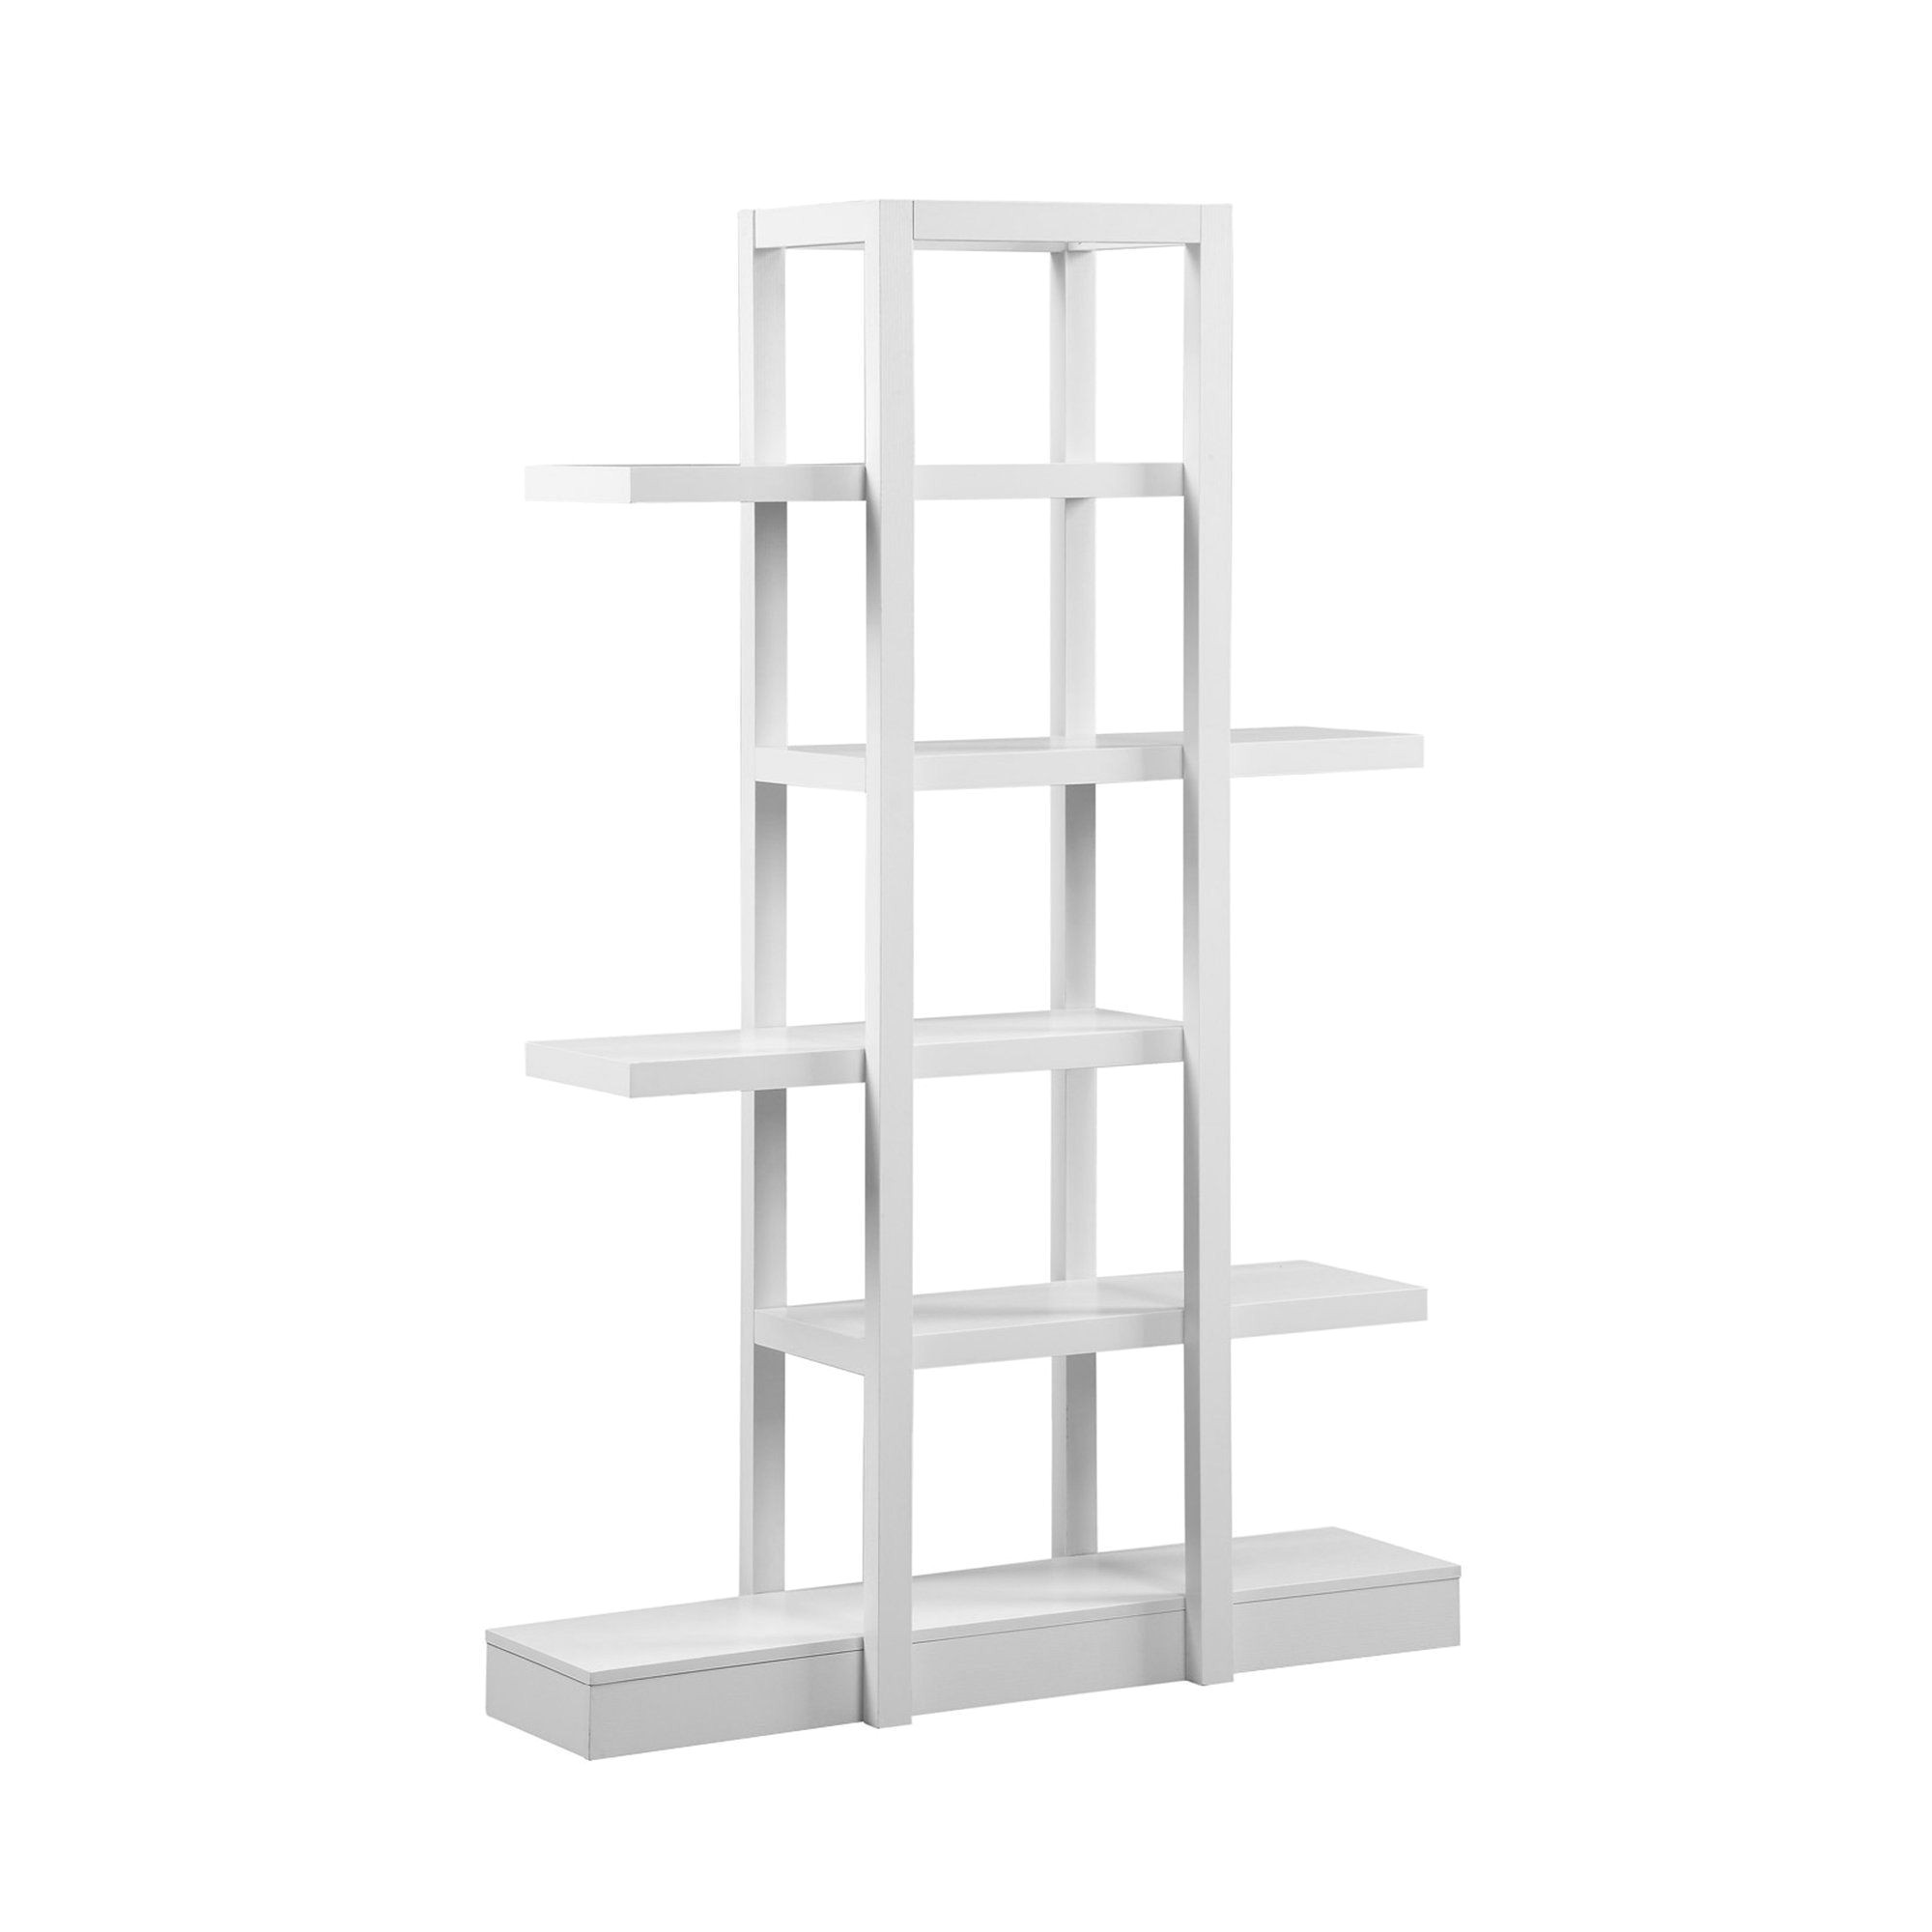 walmart awesome ameriwood 5 shelf wel e to relic interiors pins pleted pinterest wooden wall book rack new amazon labebe kid bookshelf with wheels